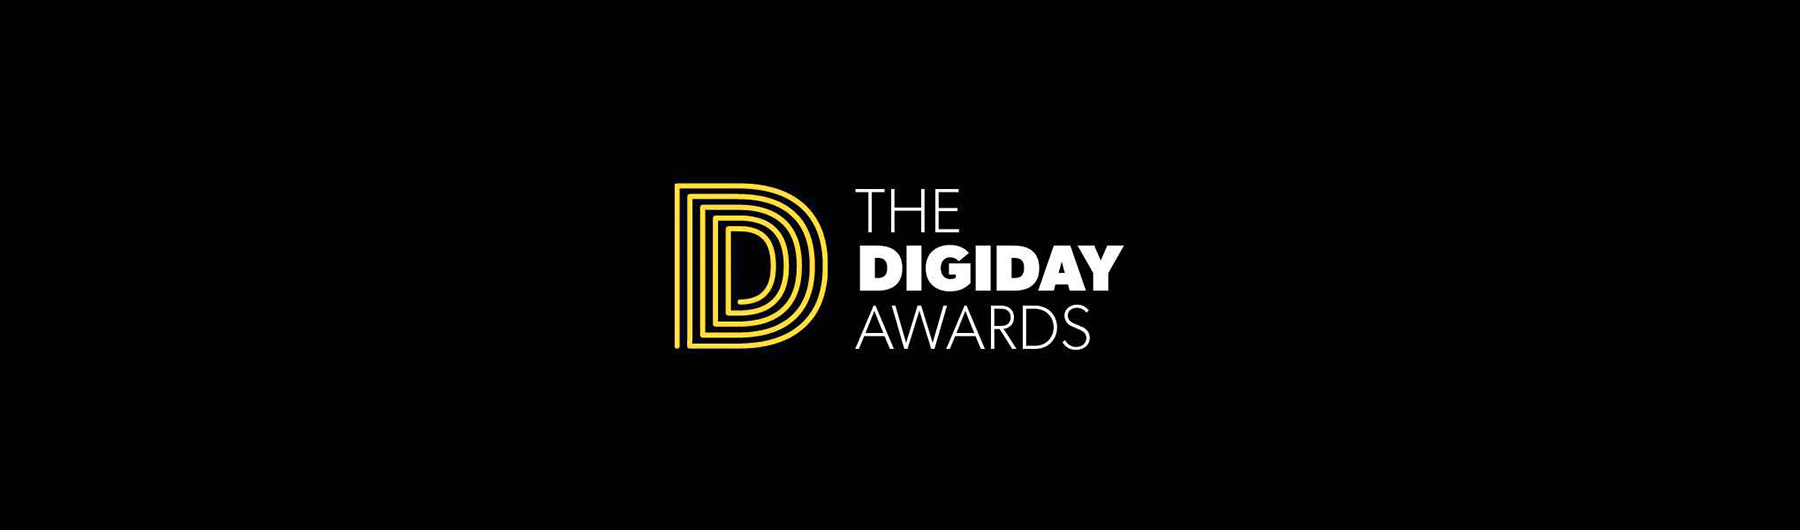 Digiday Awards Gala November 2017